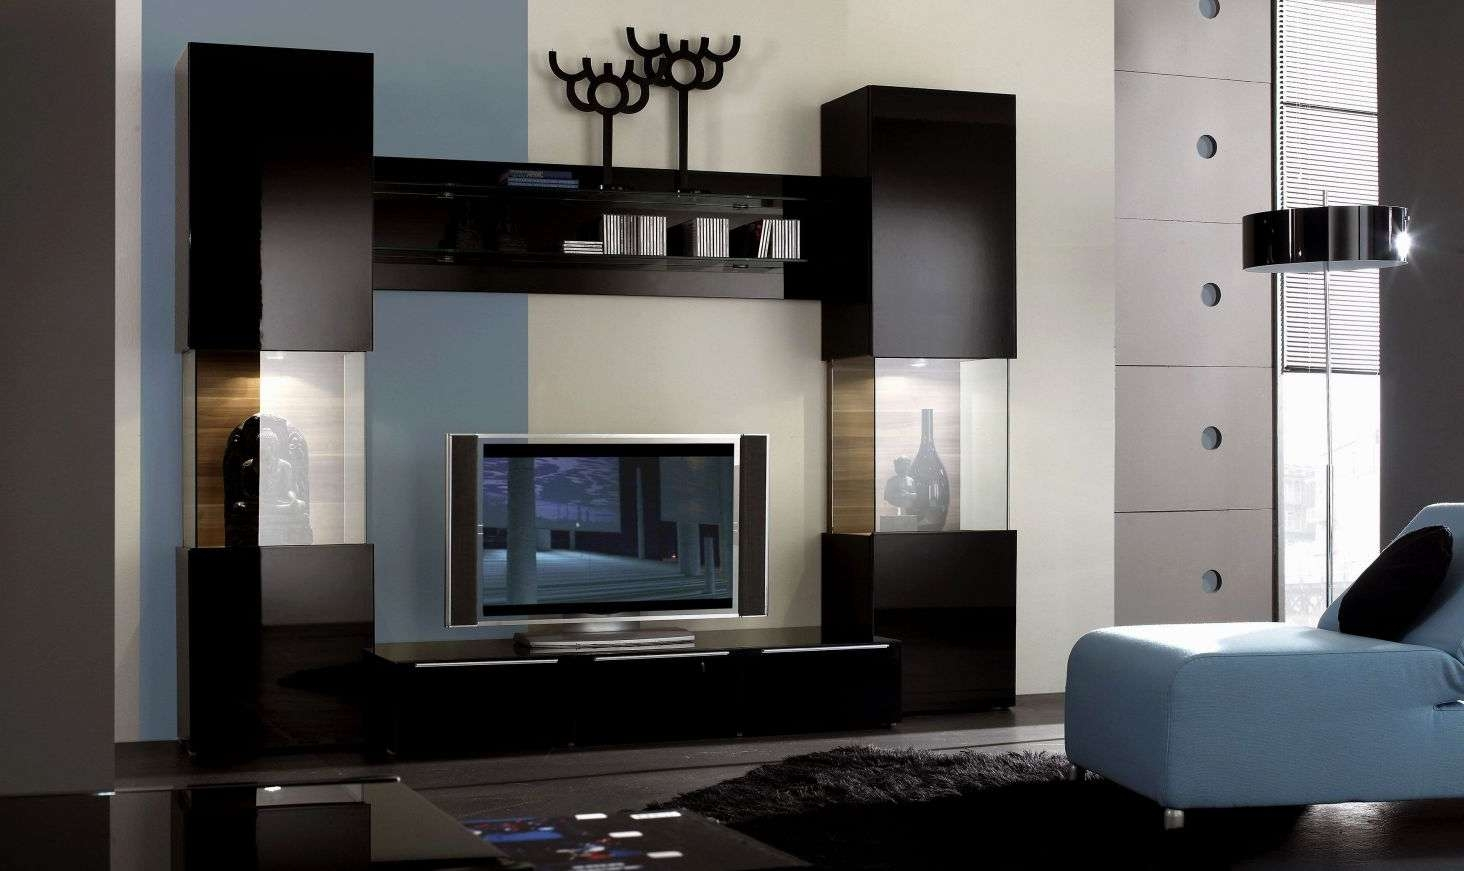 Tv : Unique Tv Stand Awesome Unusual Tv Cabinets Unique Tv Stands With Unusual Tv Cabinets (View 4 of 20)